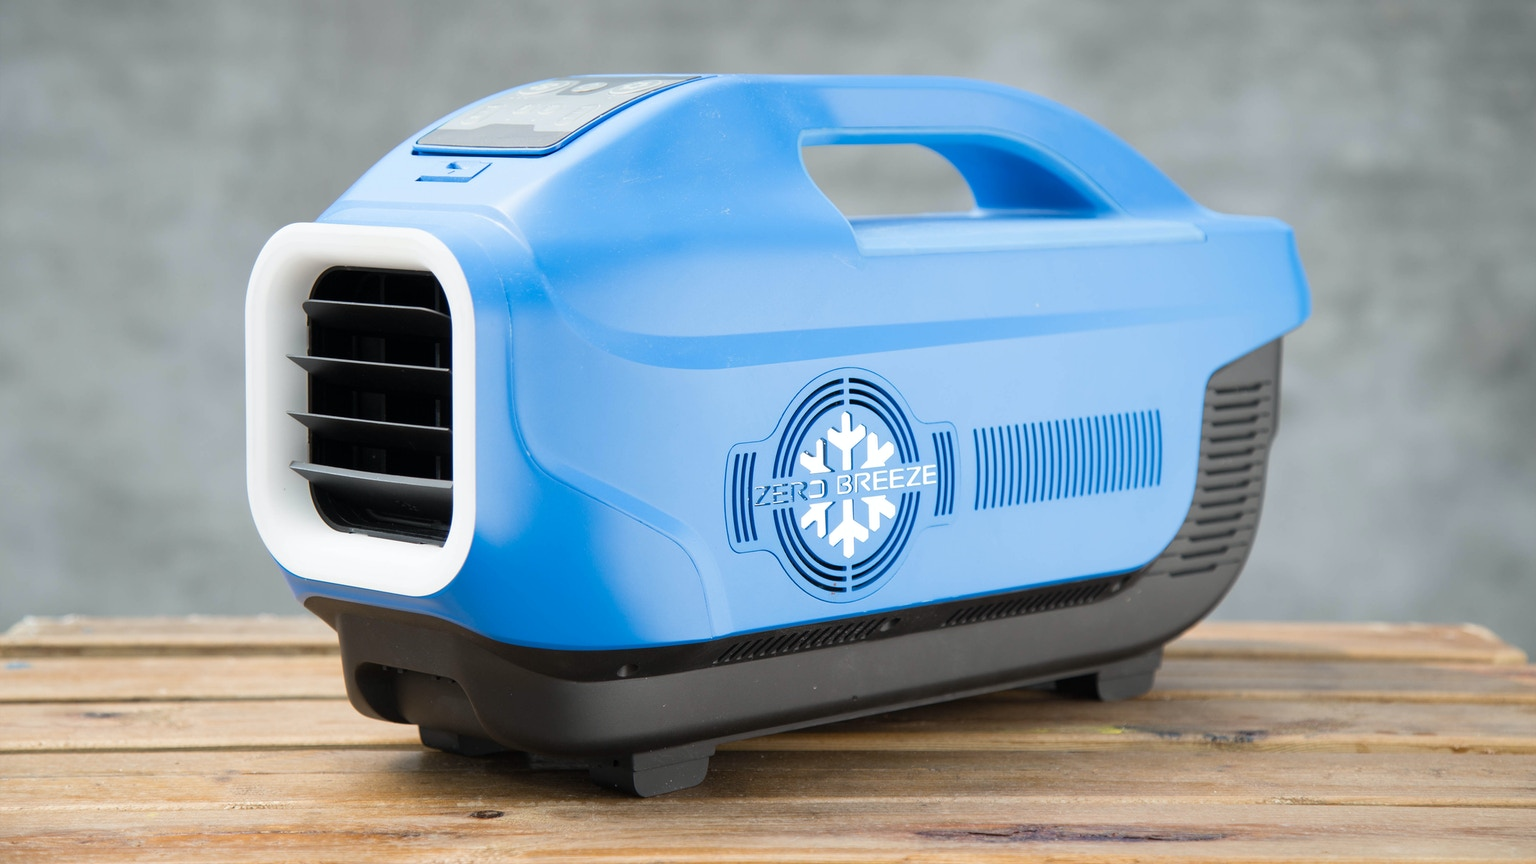 #1F70AC Zero Breeze The World's Coolest Portable Air Conditioner  Recommended 11247 Bluetooth Air Conditioner pics with 1536x864 px on helpvideos.info - Air Conditioners, Air Coolers and more